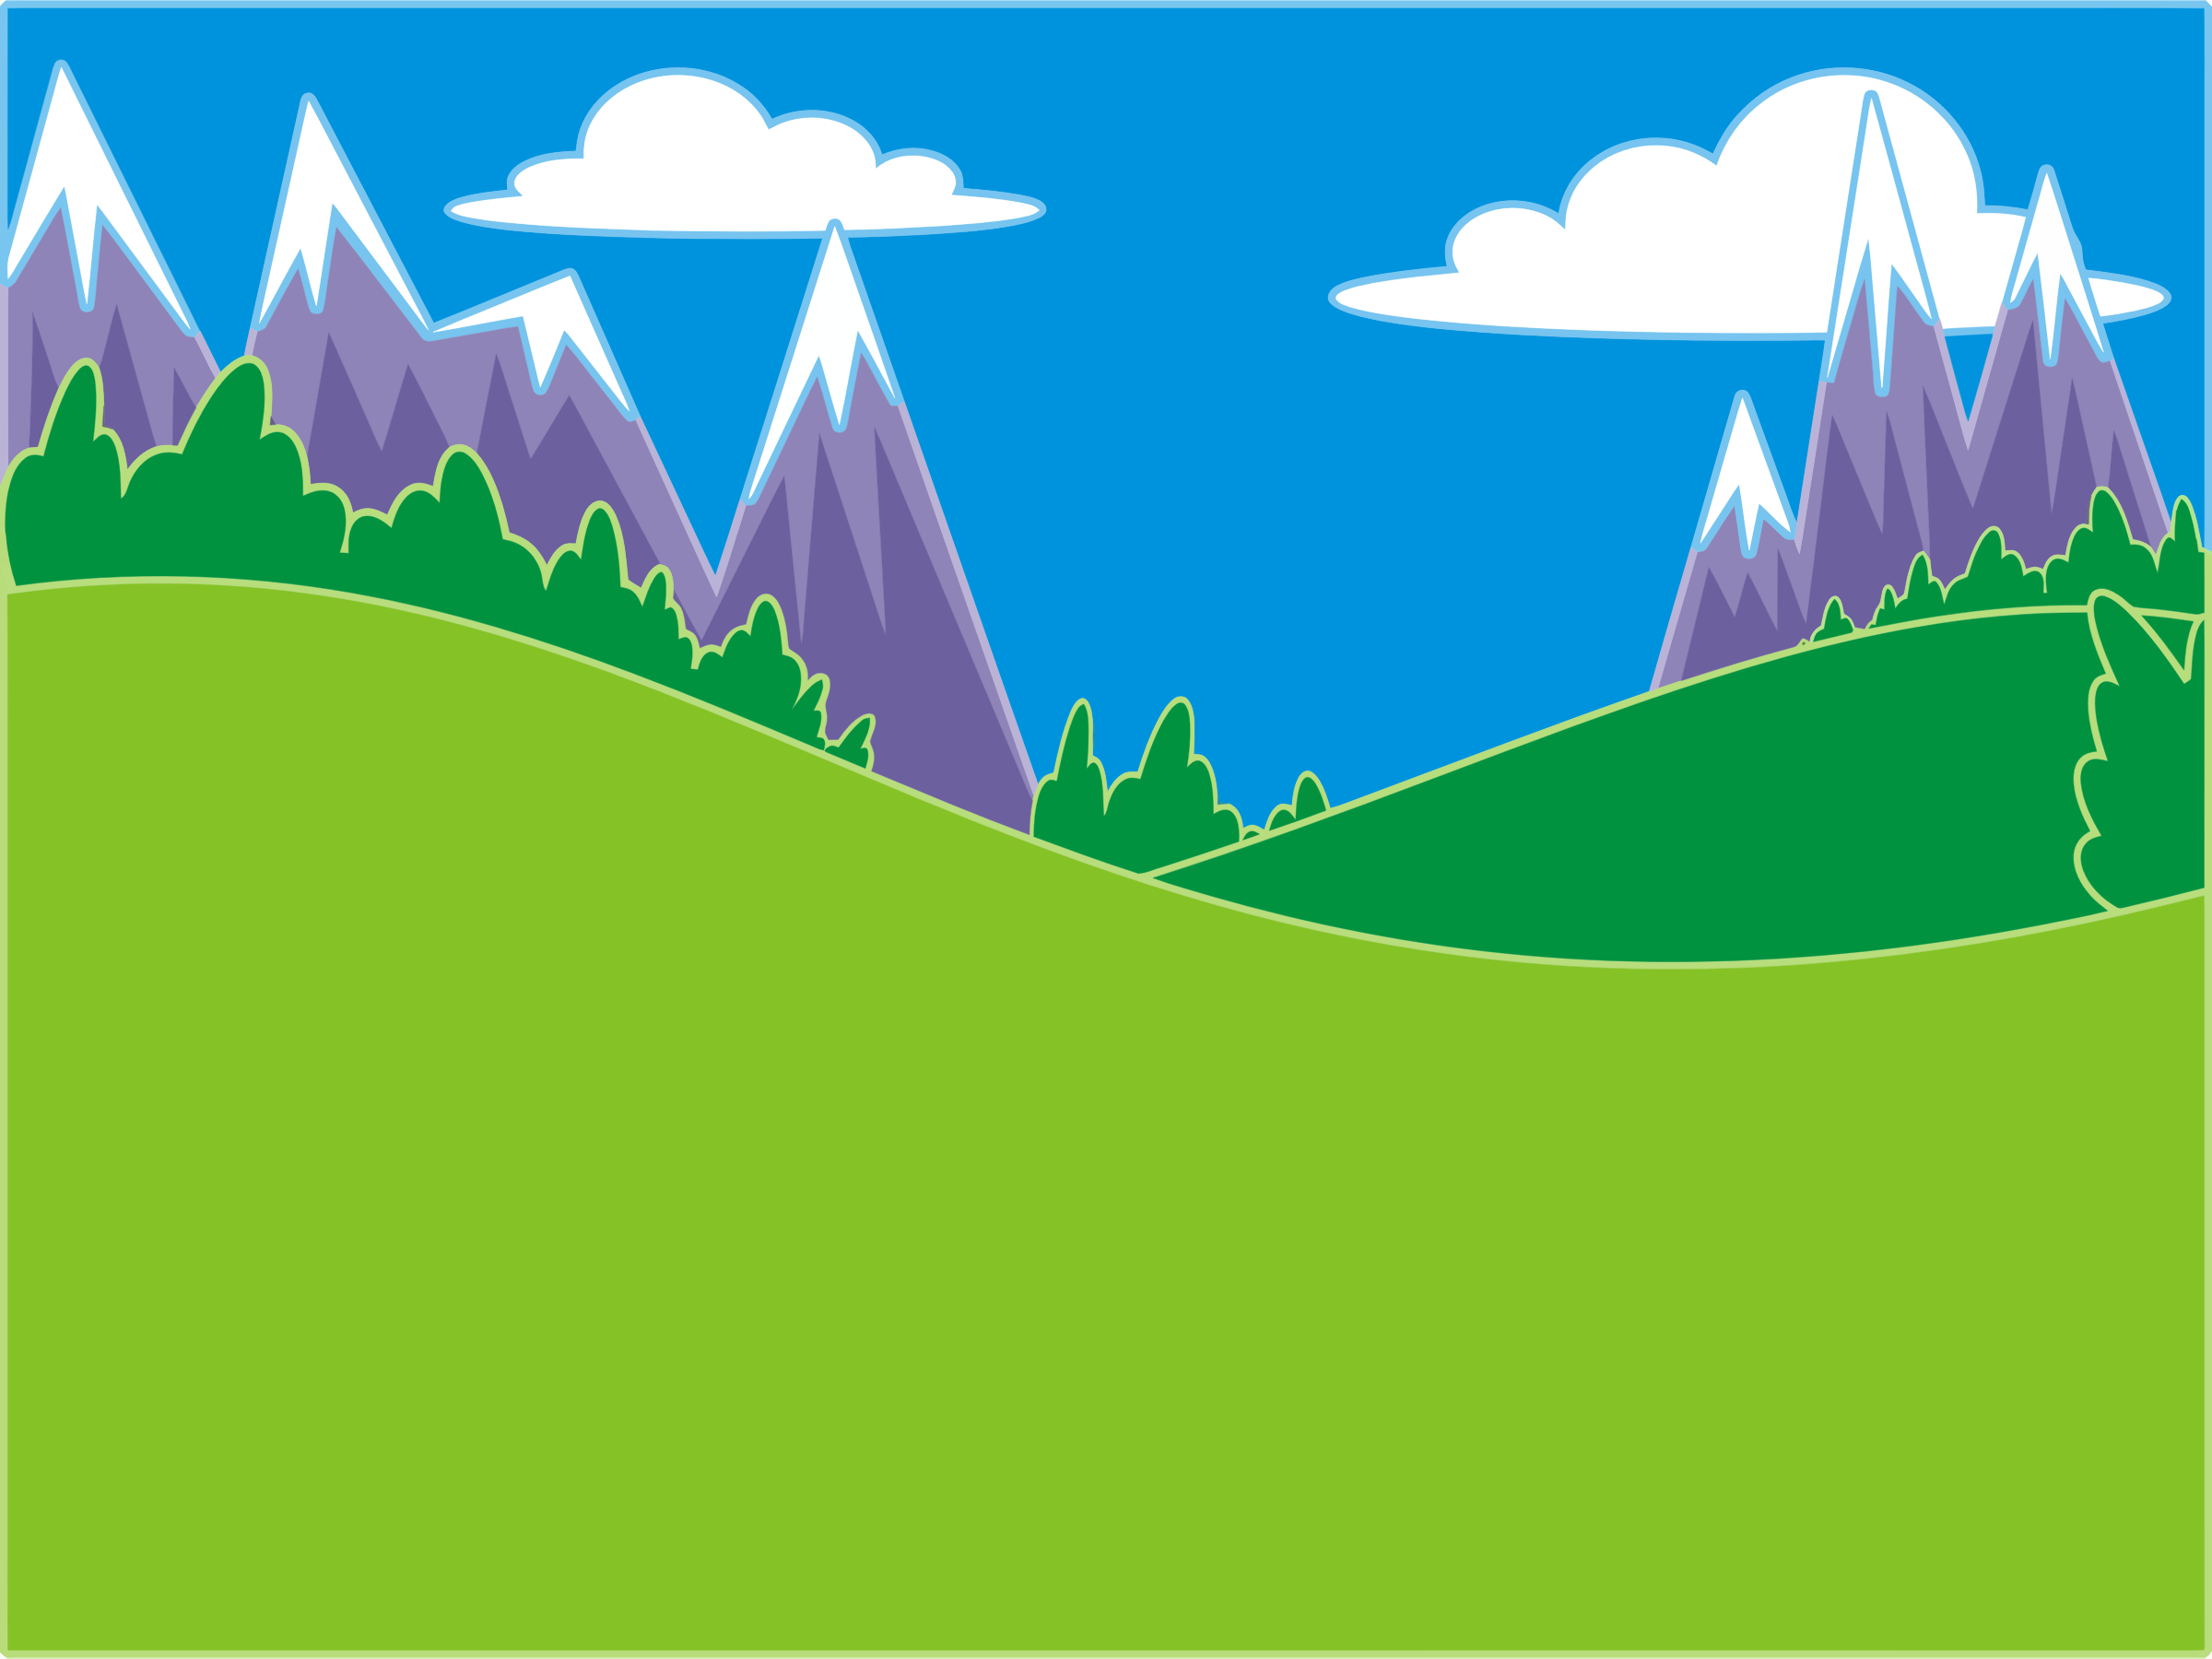 Clipart green hills and mountains landscape.